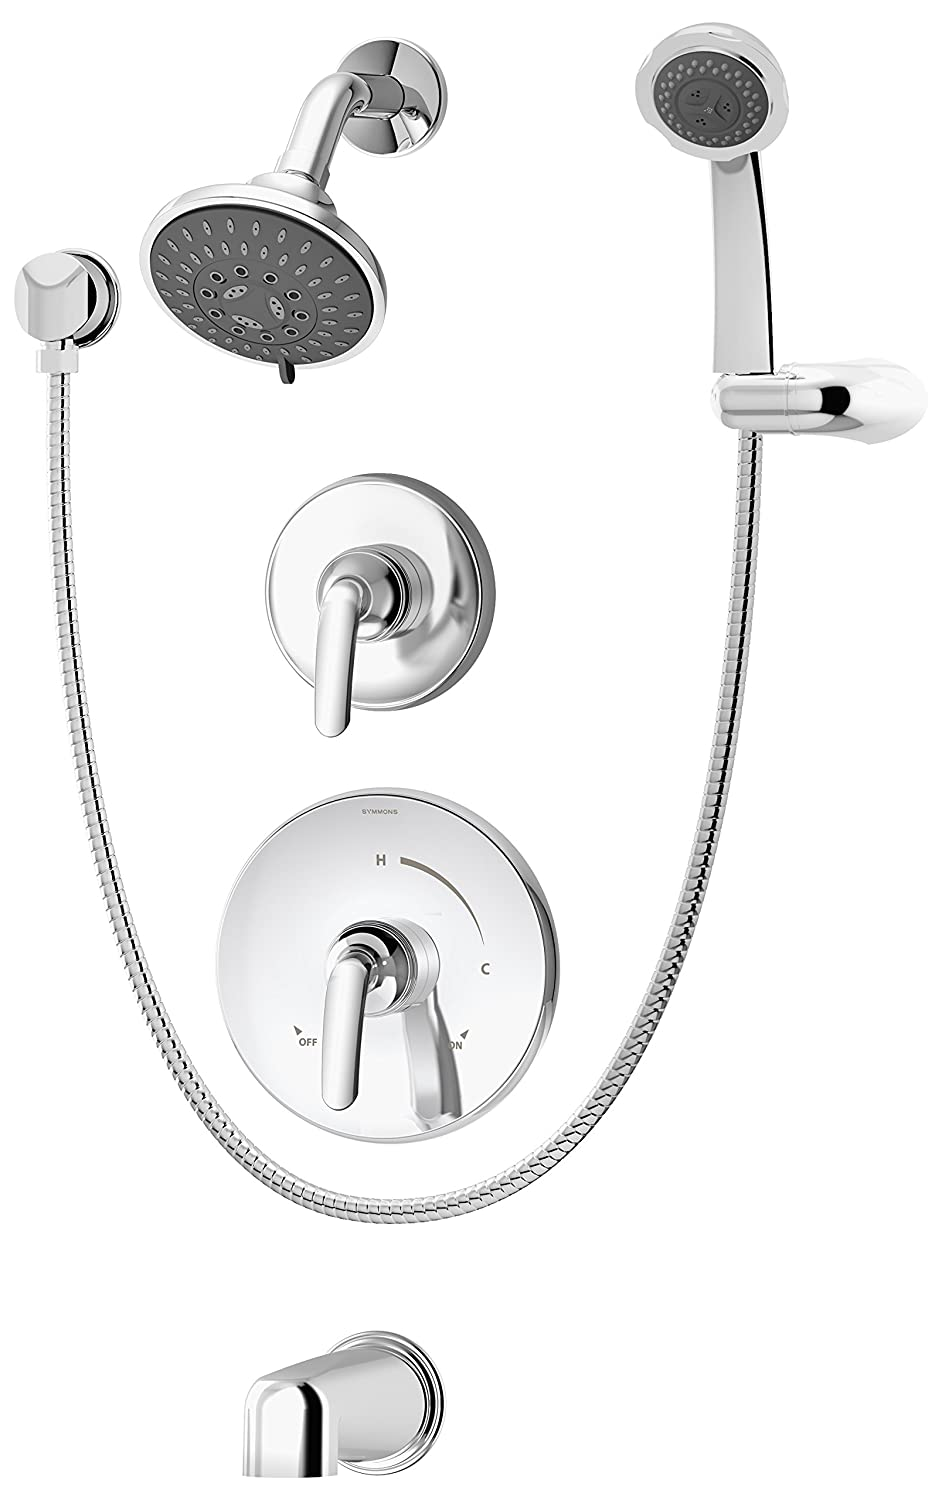 Symmons 5506-TRM Elm Tub, Shower and Handshower Trim, Chrome by Symmons B00FN6KHPY